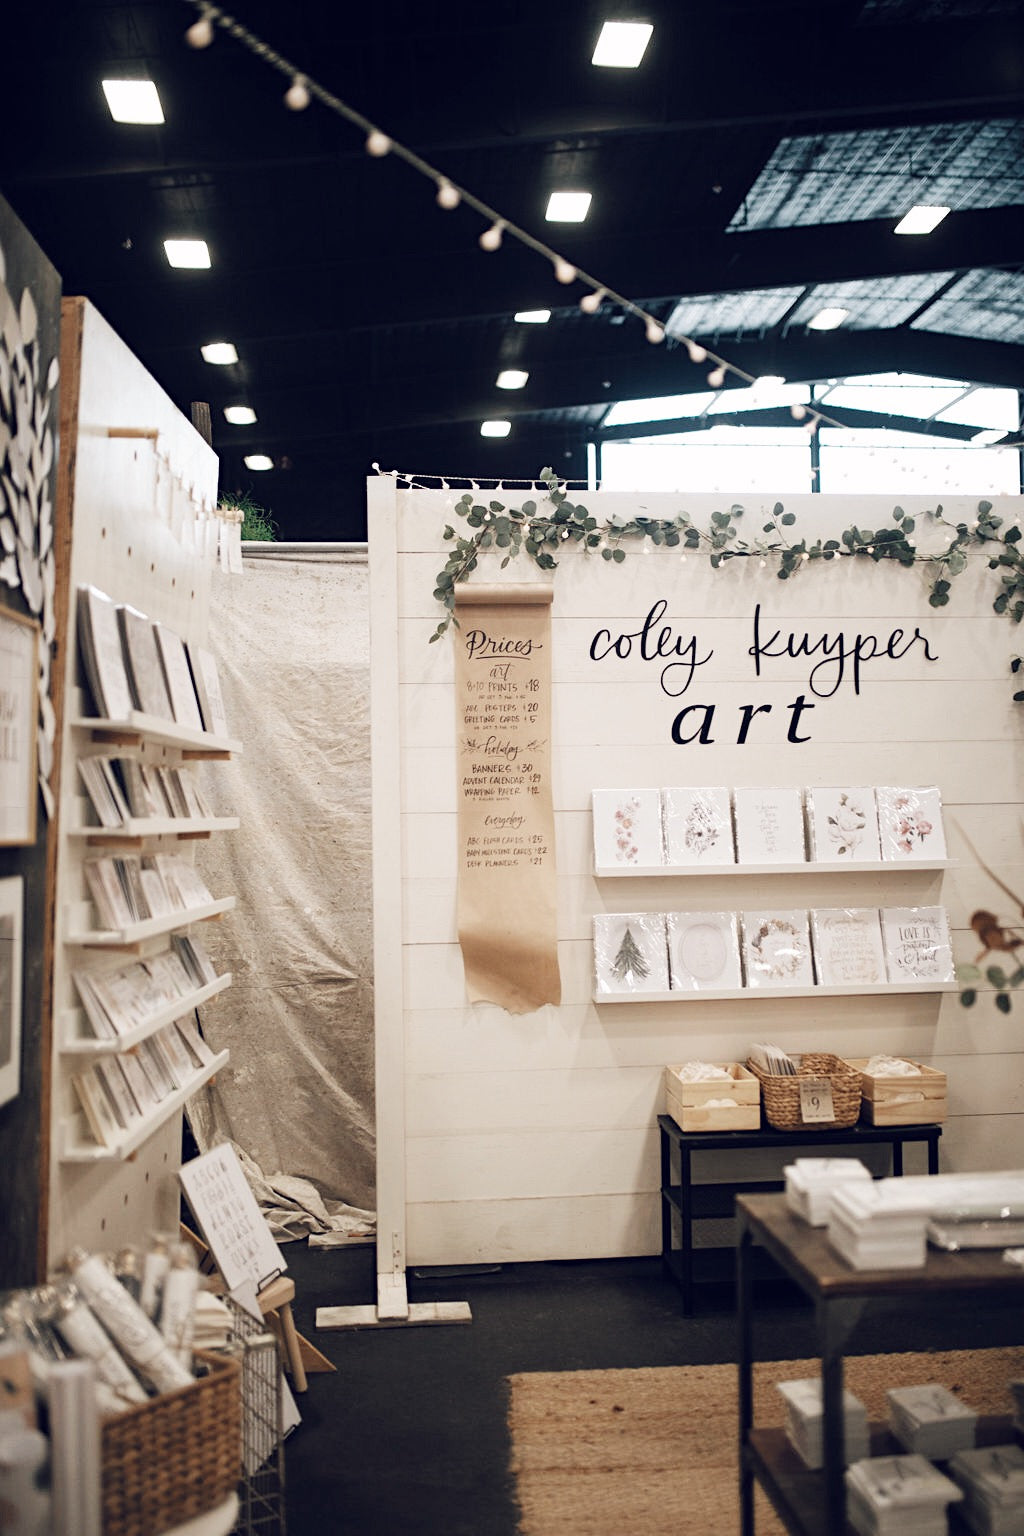 coley kuyper art booth at junk in the trunk vintage market